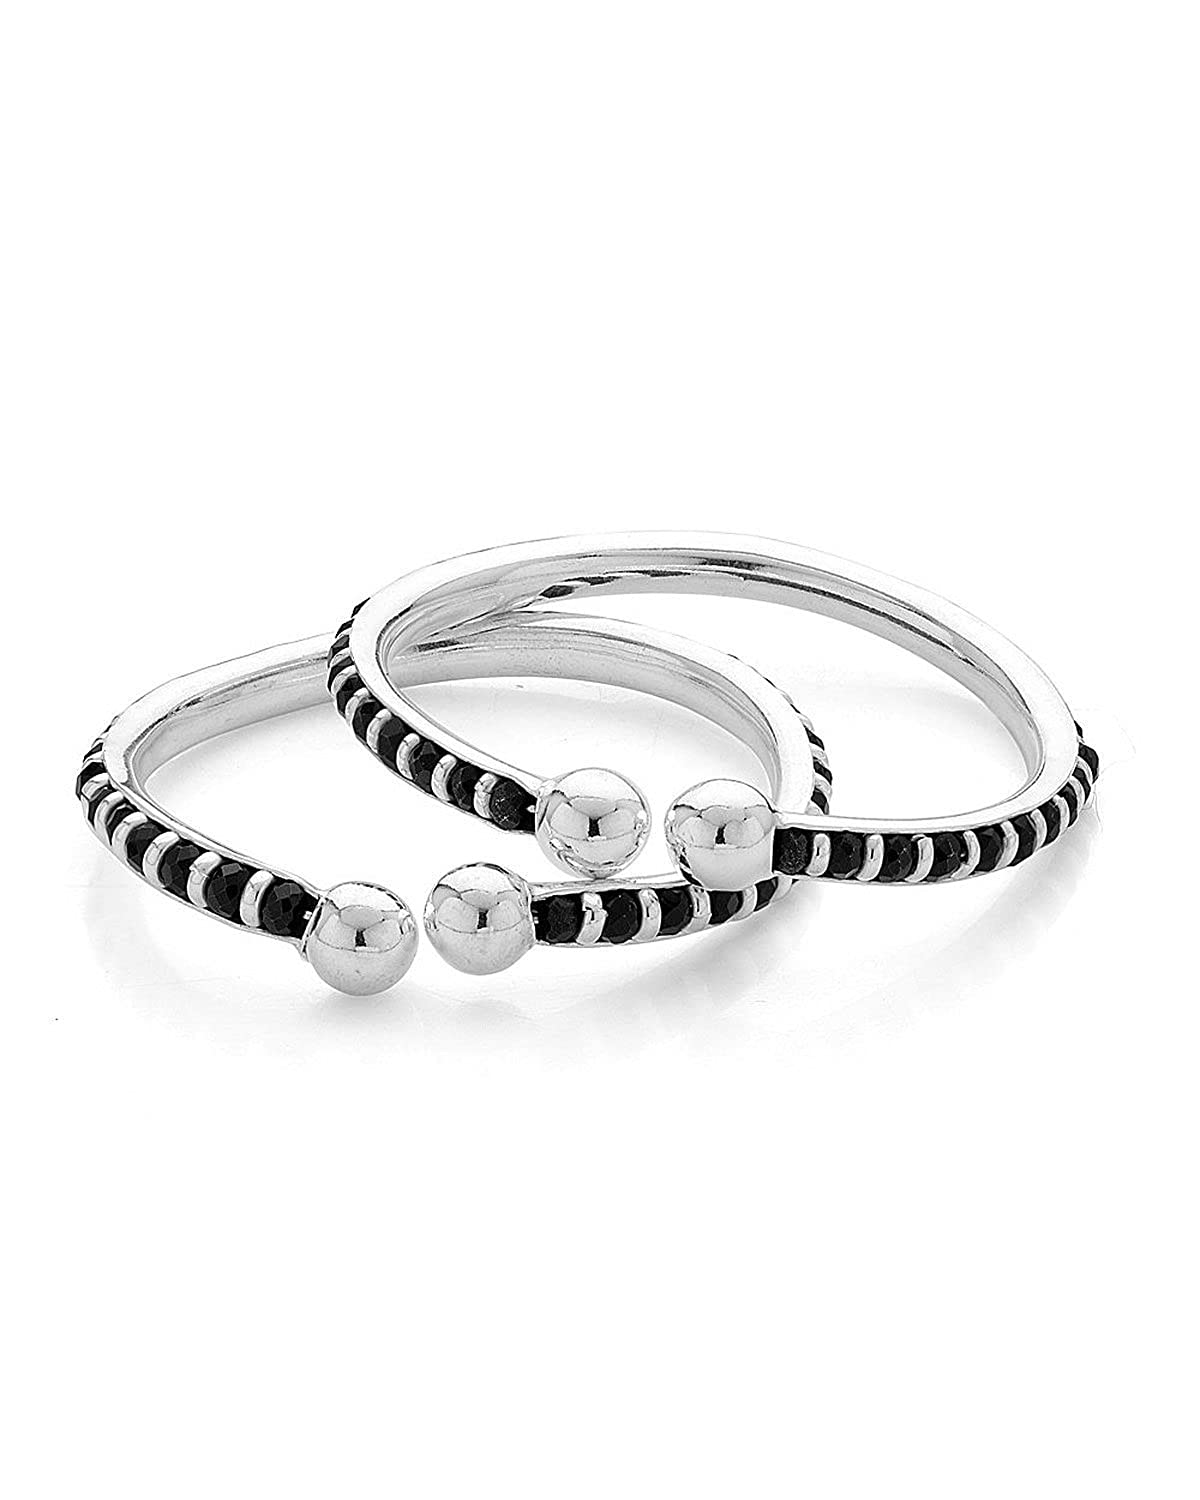 bangle belcher bangles infant in silver sterling baby bracelet